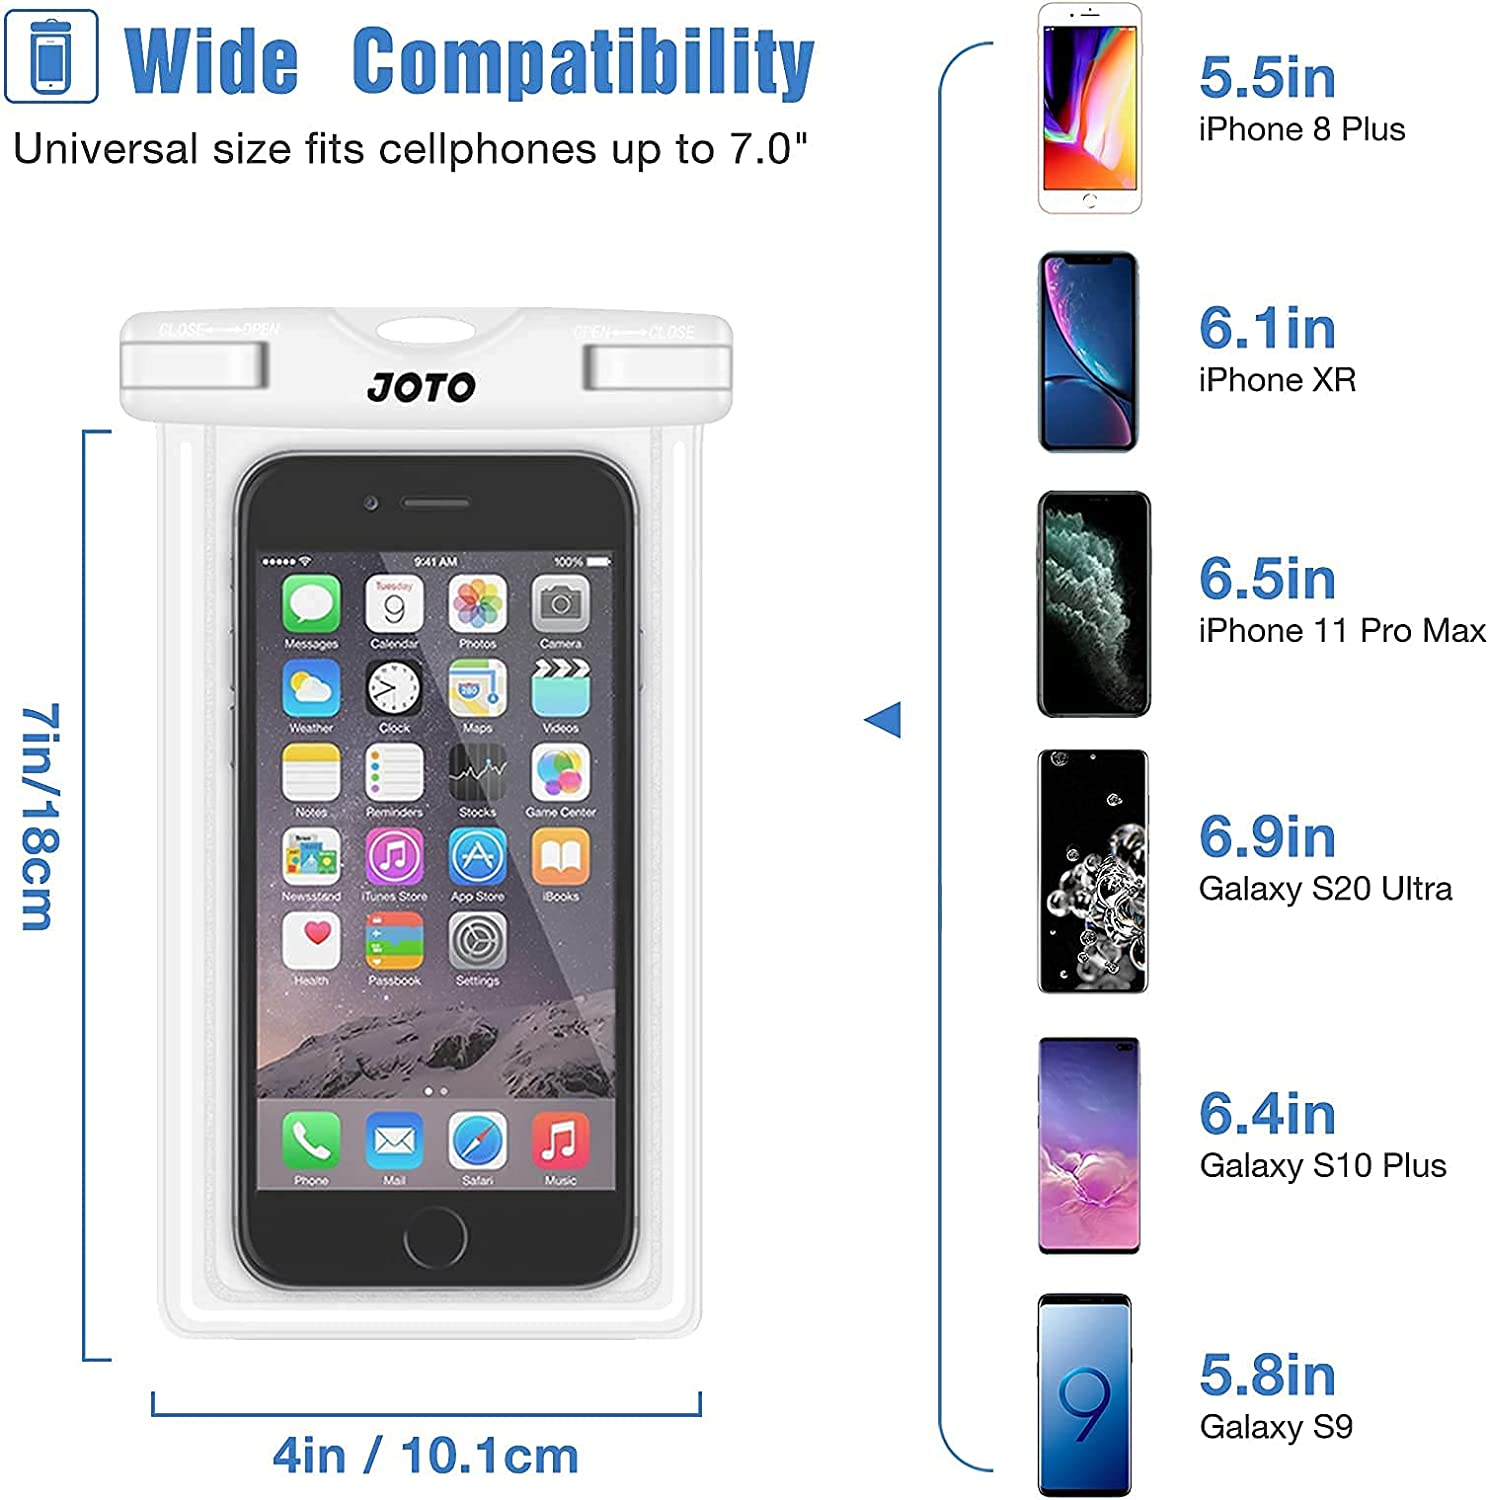 JOTO Universal Waterproof Pouch Cellphone Dry Bag Case Bundle with Universal Waterproof Case for Phones up to 7